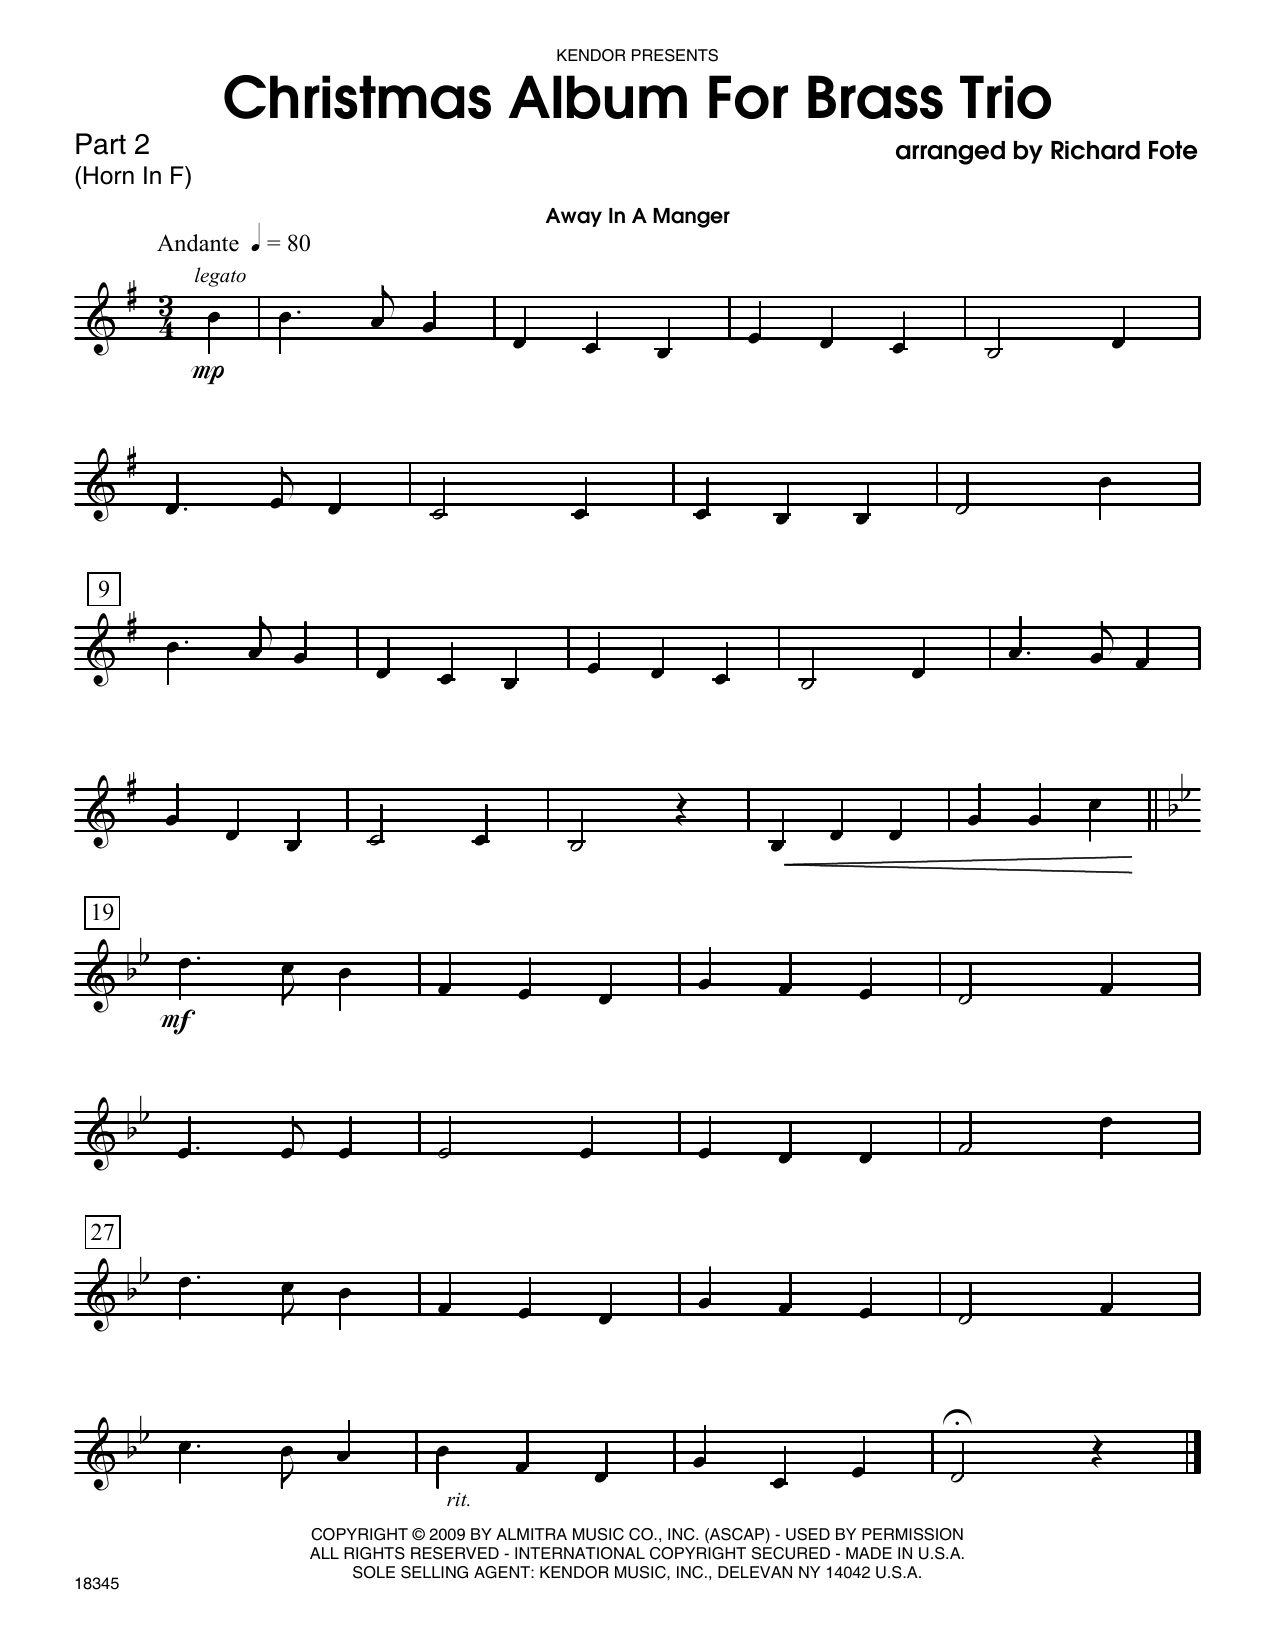 Christmas Album For Brass Trio - Part 2 Sheet Music